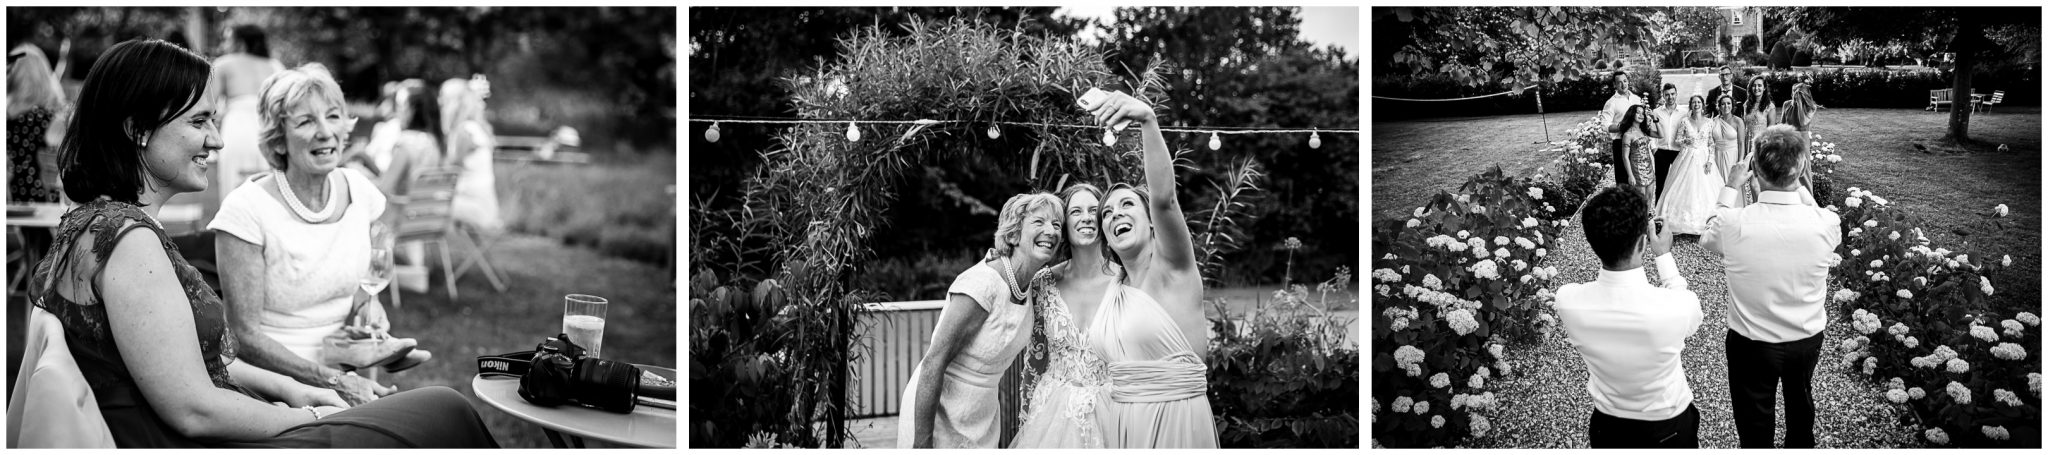 Candid moments at the evening wedding reception